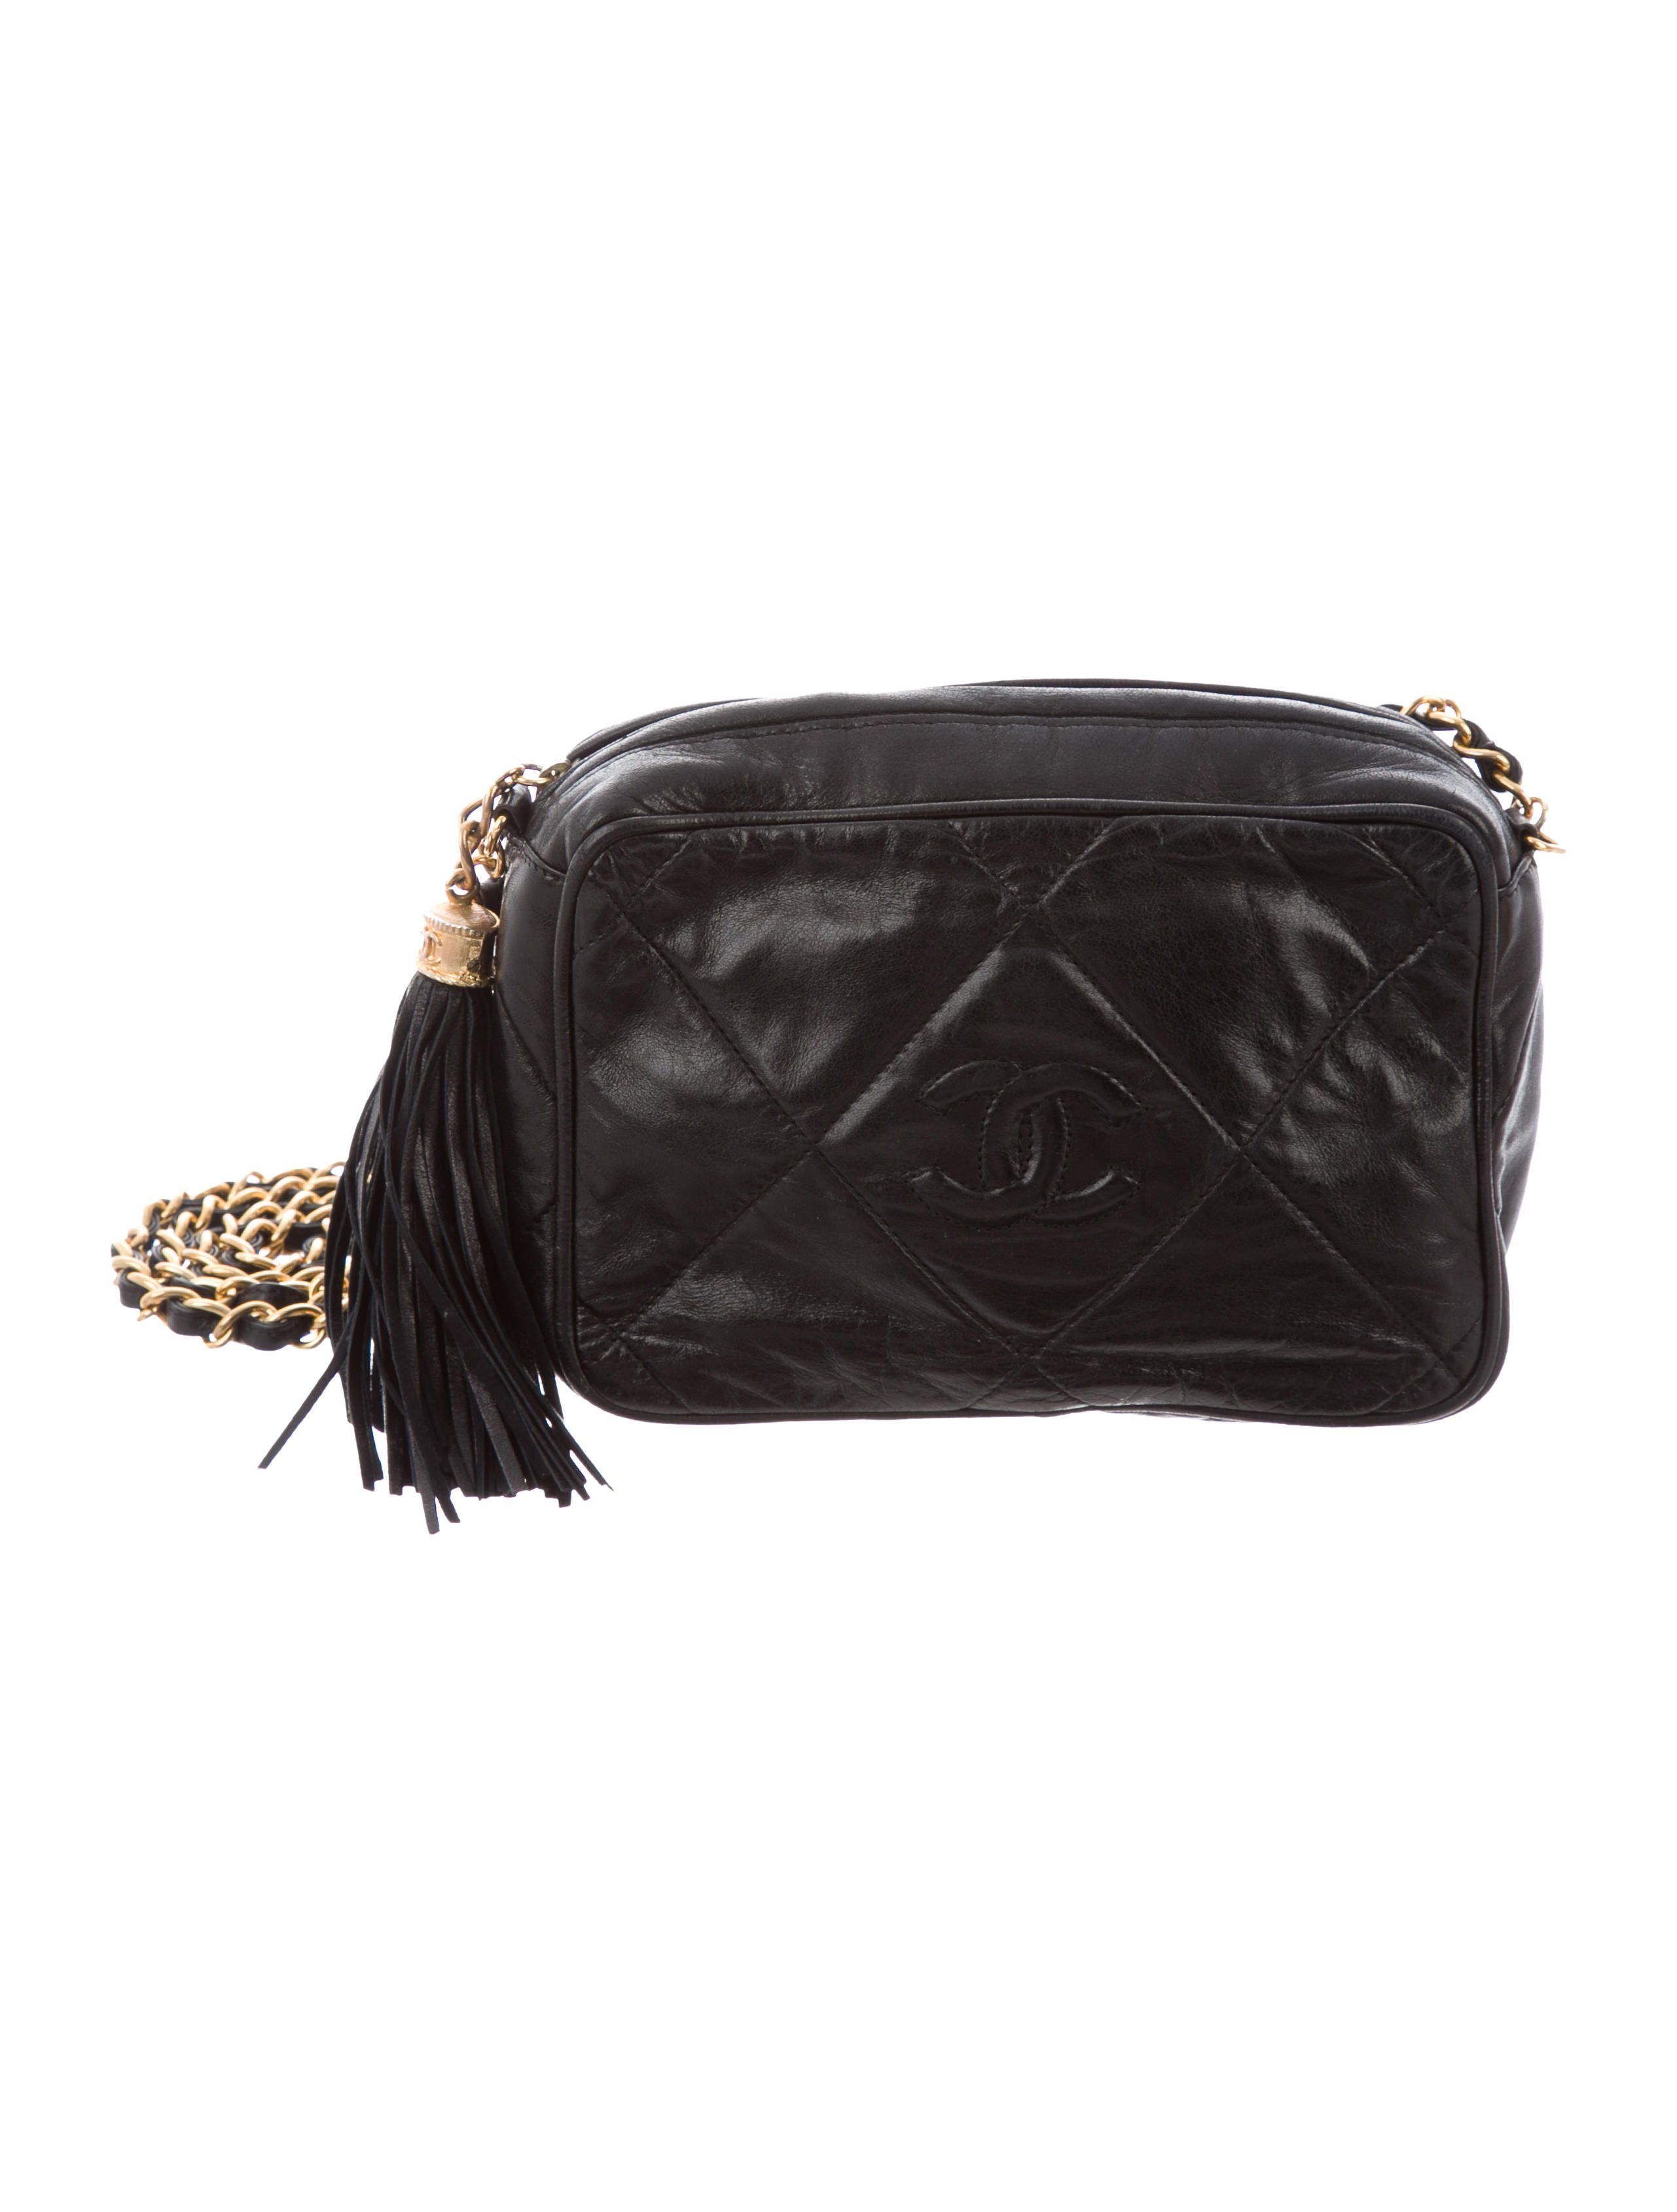 8a084b37e0e8 Black quilted lambskin Chanel vintage small camera bag with gold-tone  hardware